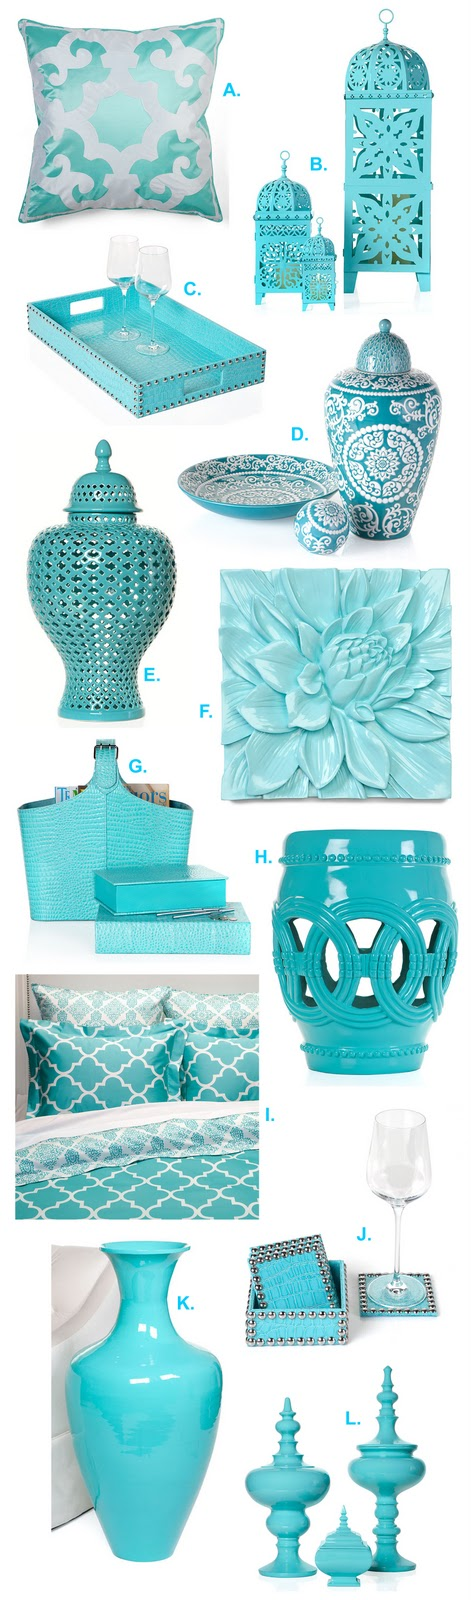 A designer a contractor a for aquamarine for Designer home decor accessories